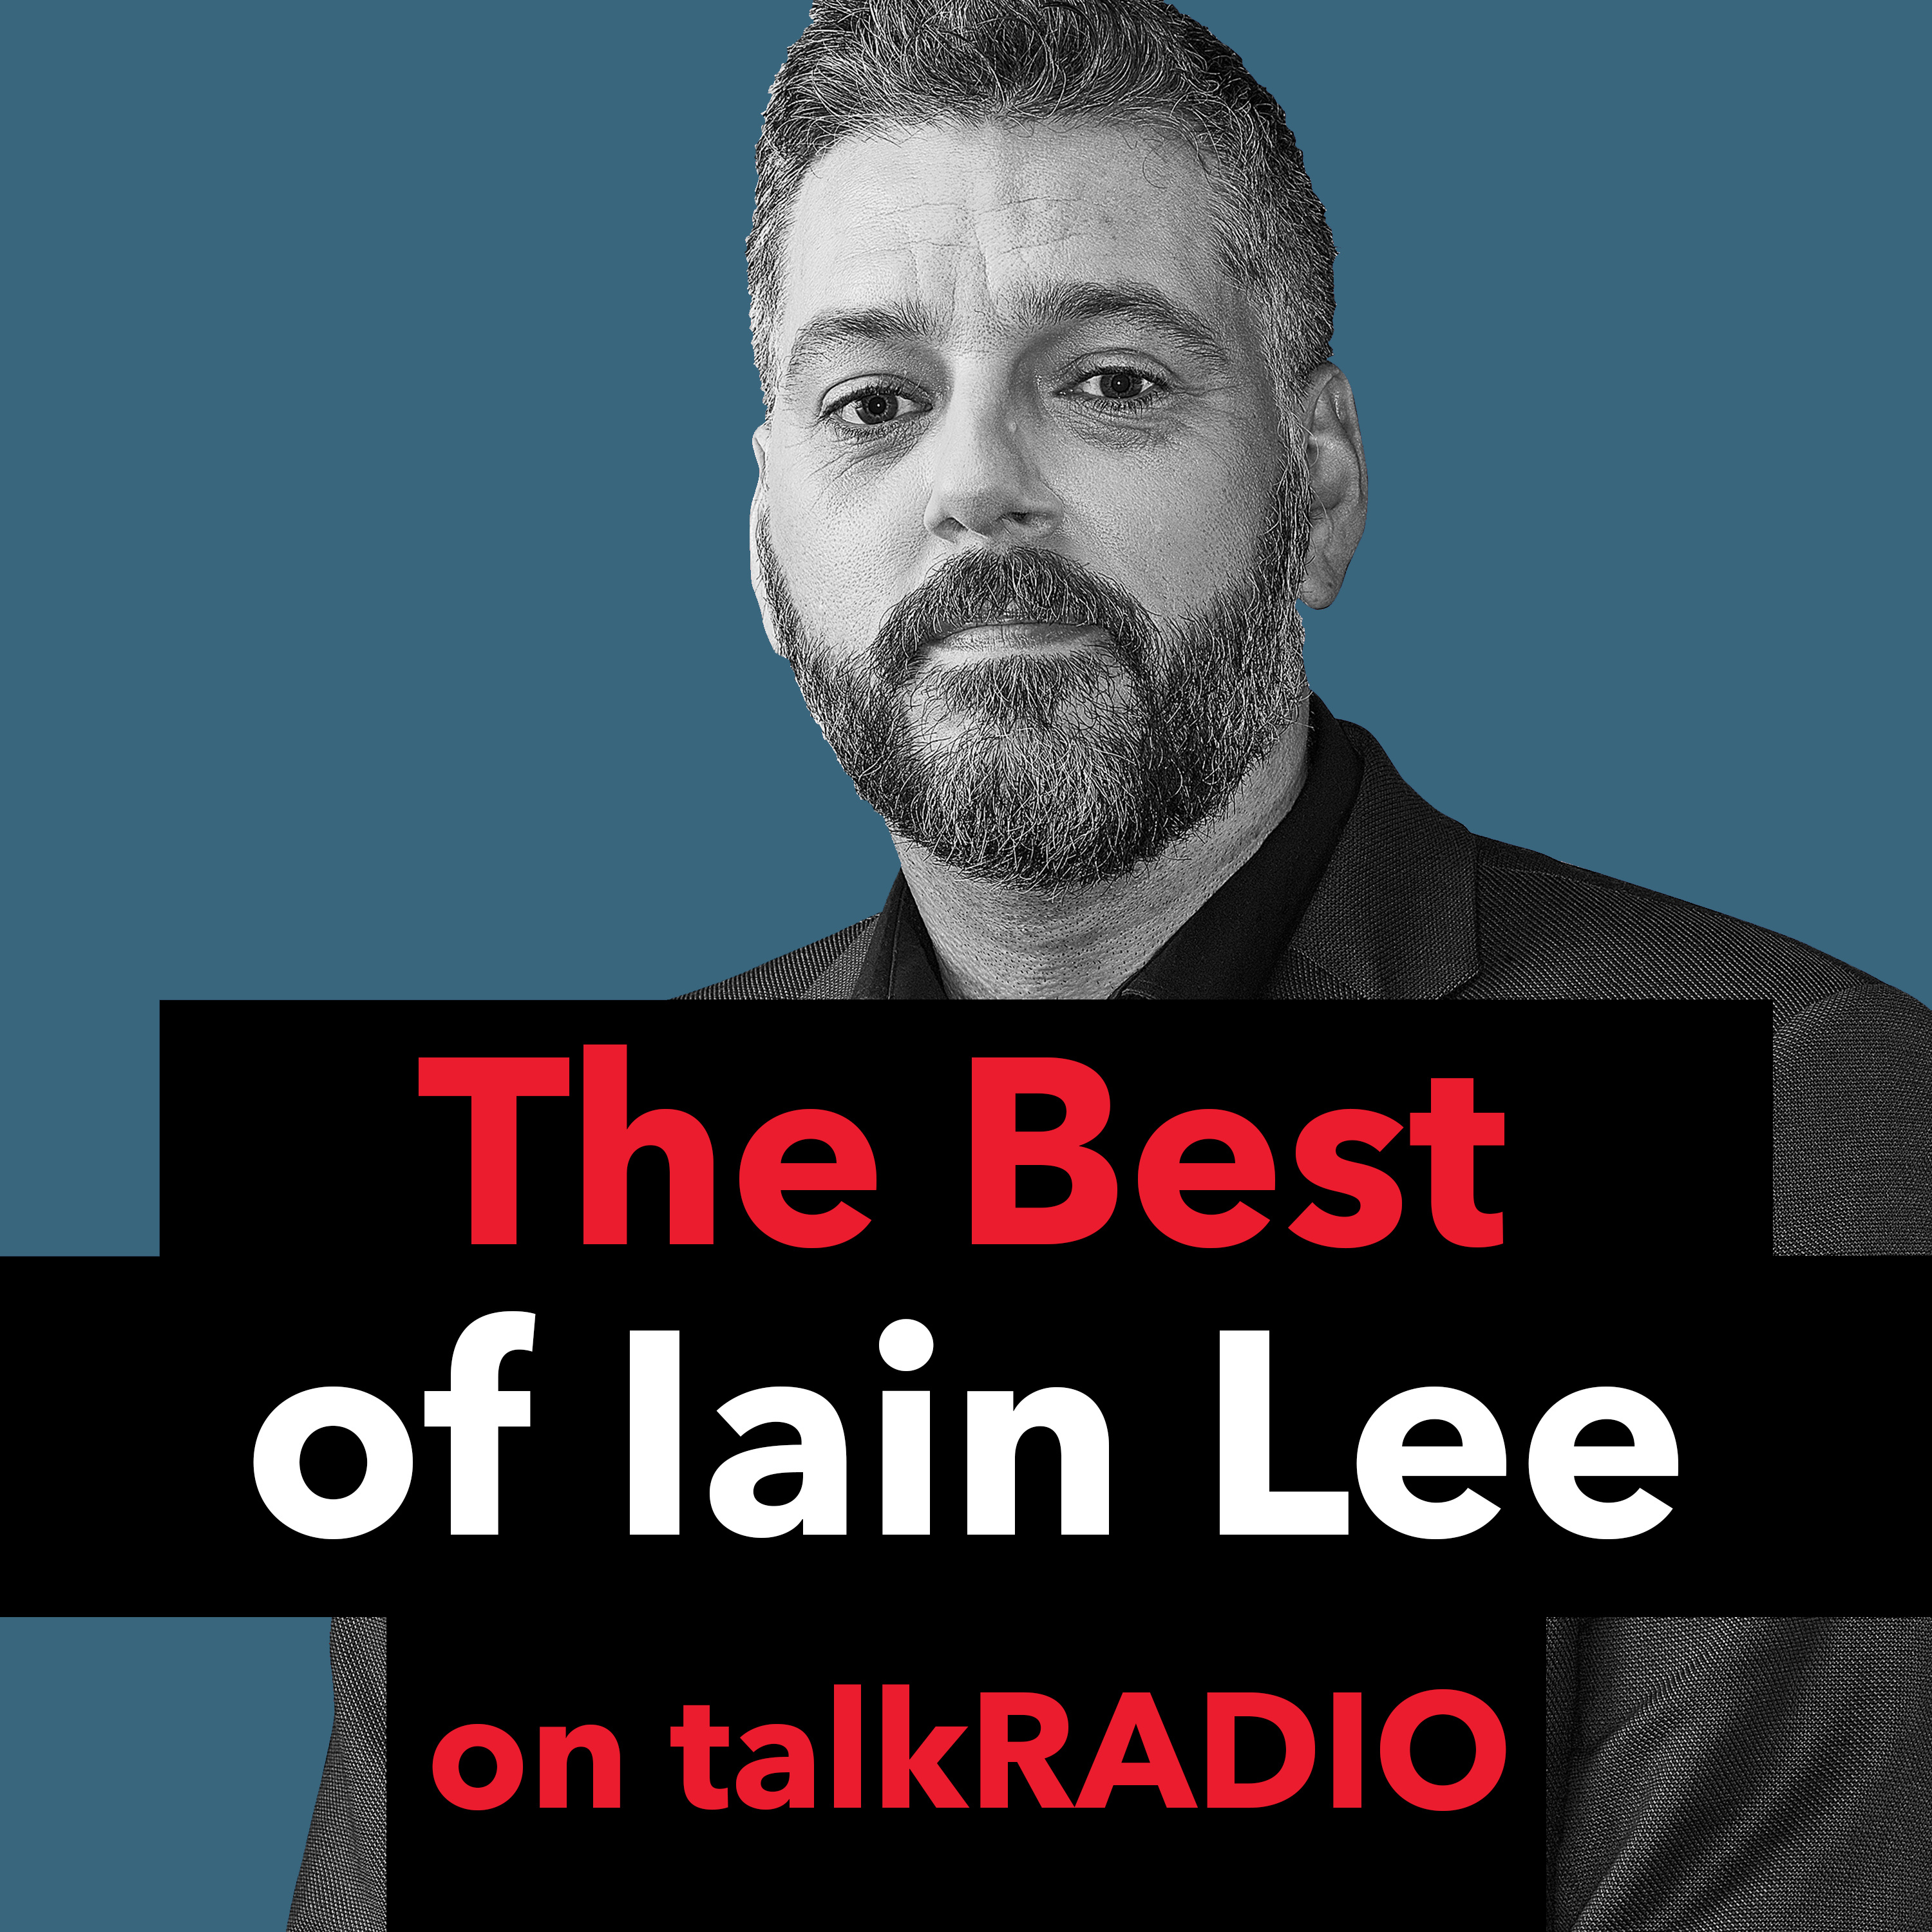 The Best of Iain Lee - Saturday 14th September 2019